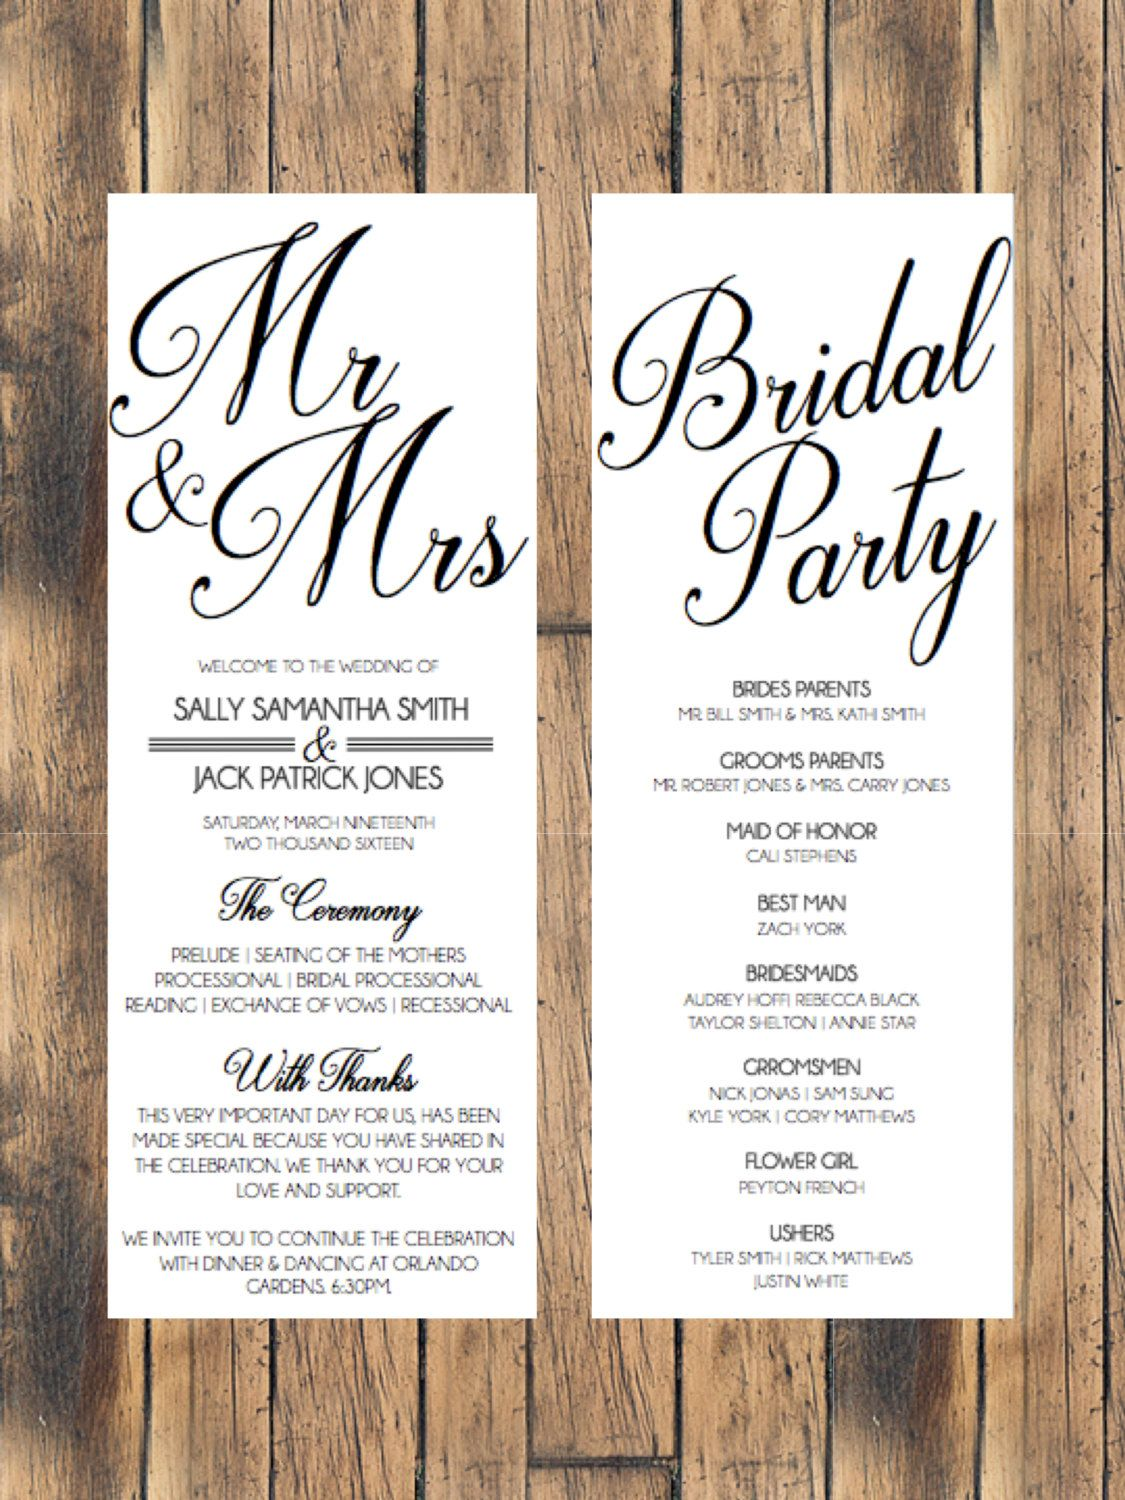 Wedding Programs, Wedding